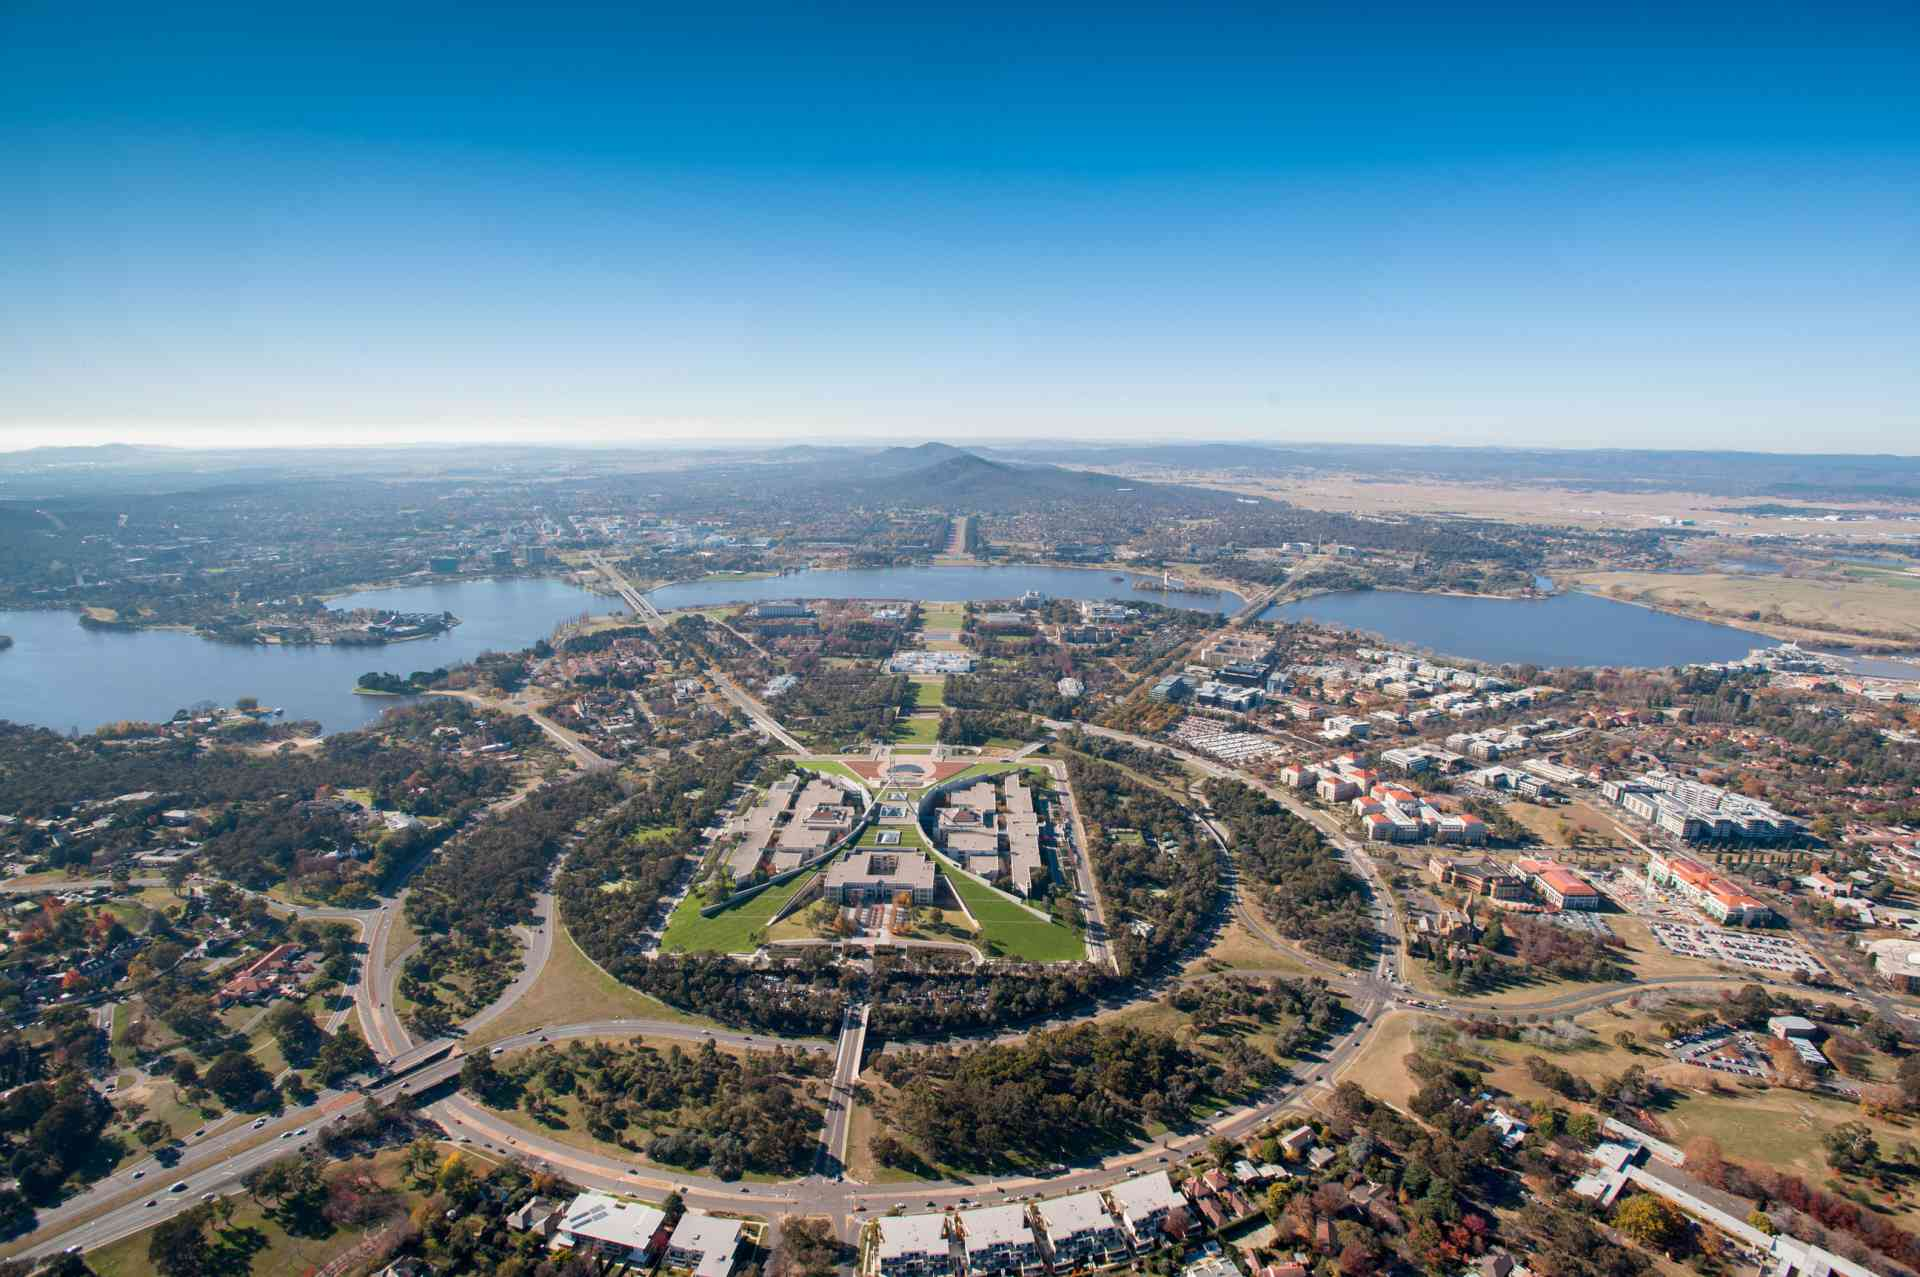 Parliament House, Lake Burley Griffin, Canberra by VisitCanberra